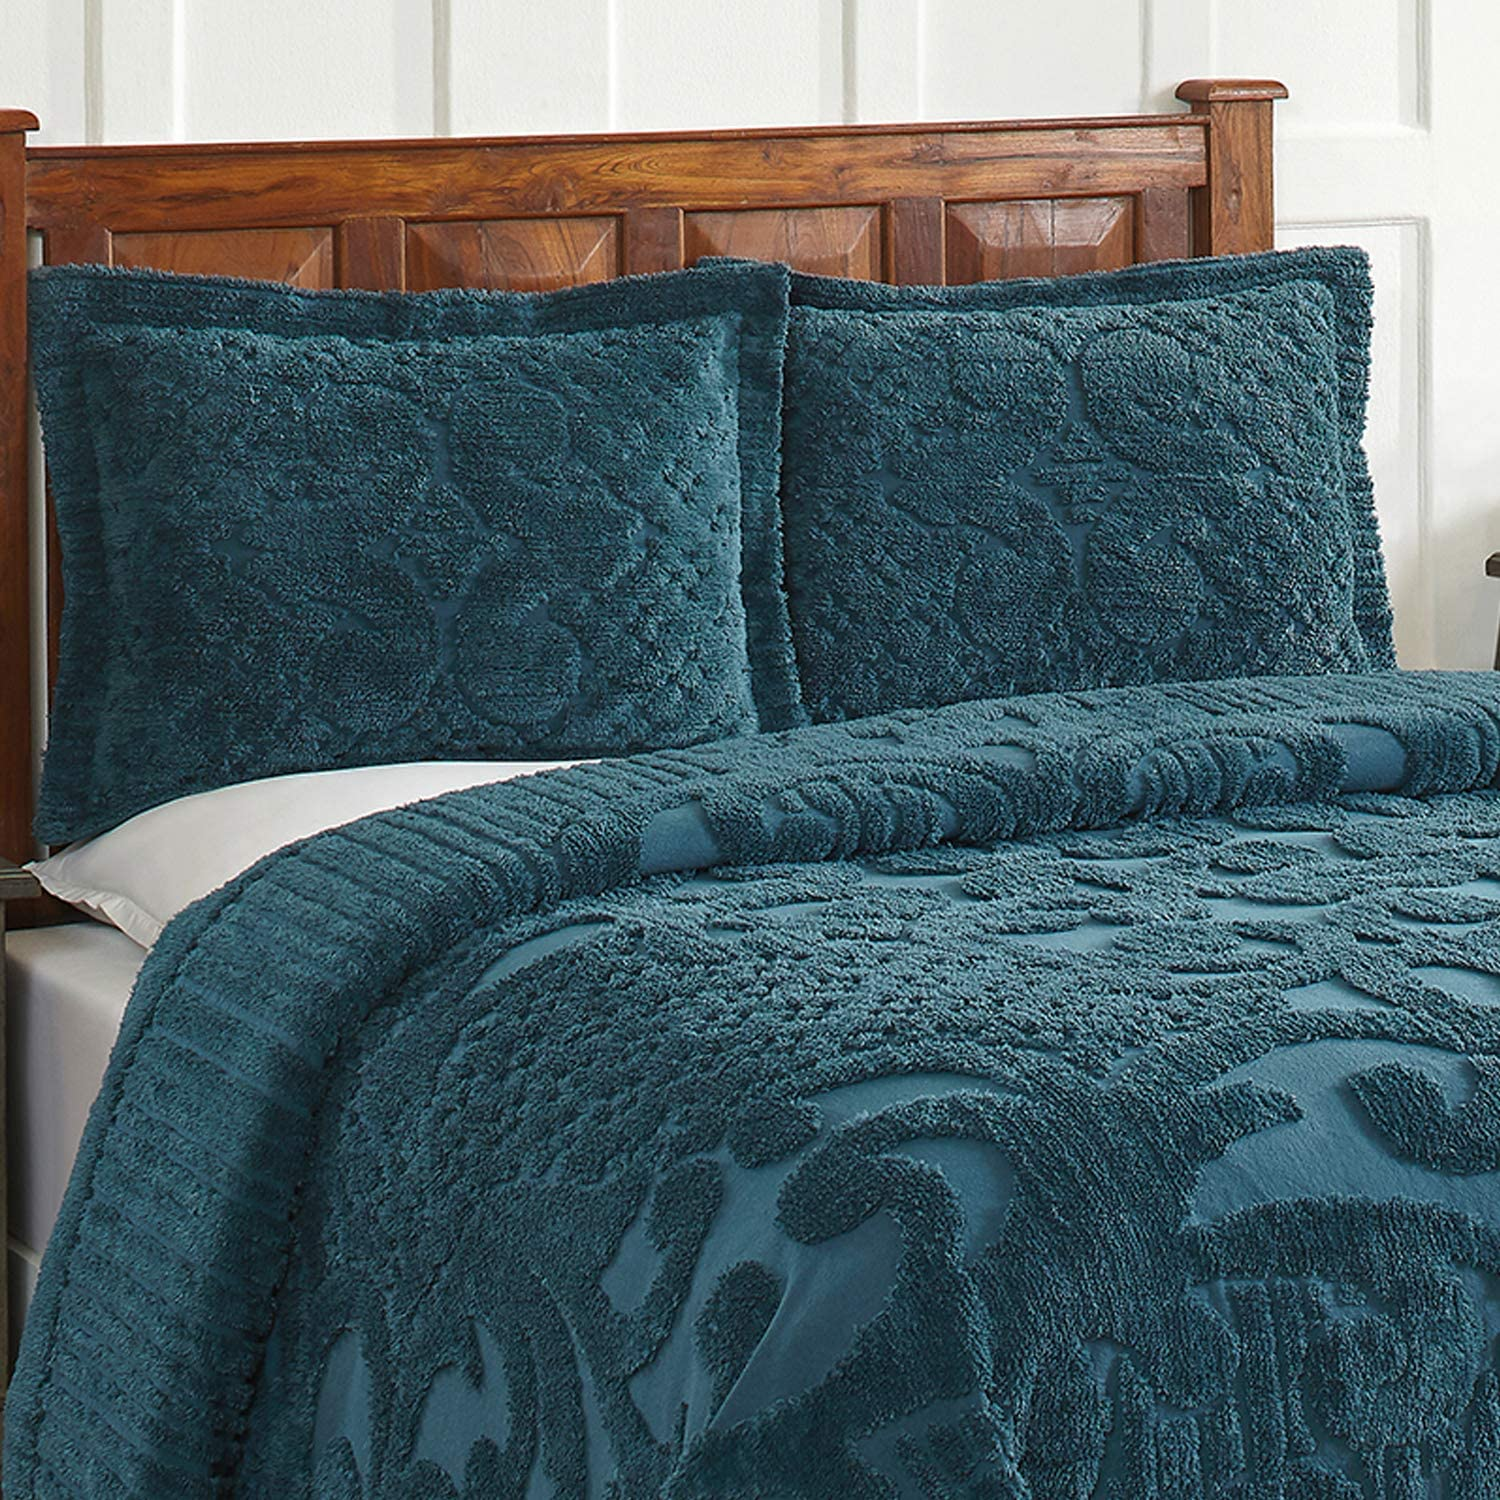 Better Trends Ashton Collection in Medallion Design 100/% Cotton Tufted Chenille Sage Full//Double Bedspread